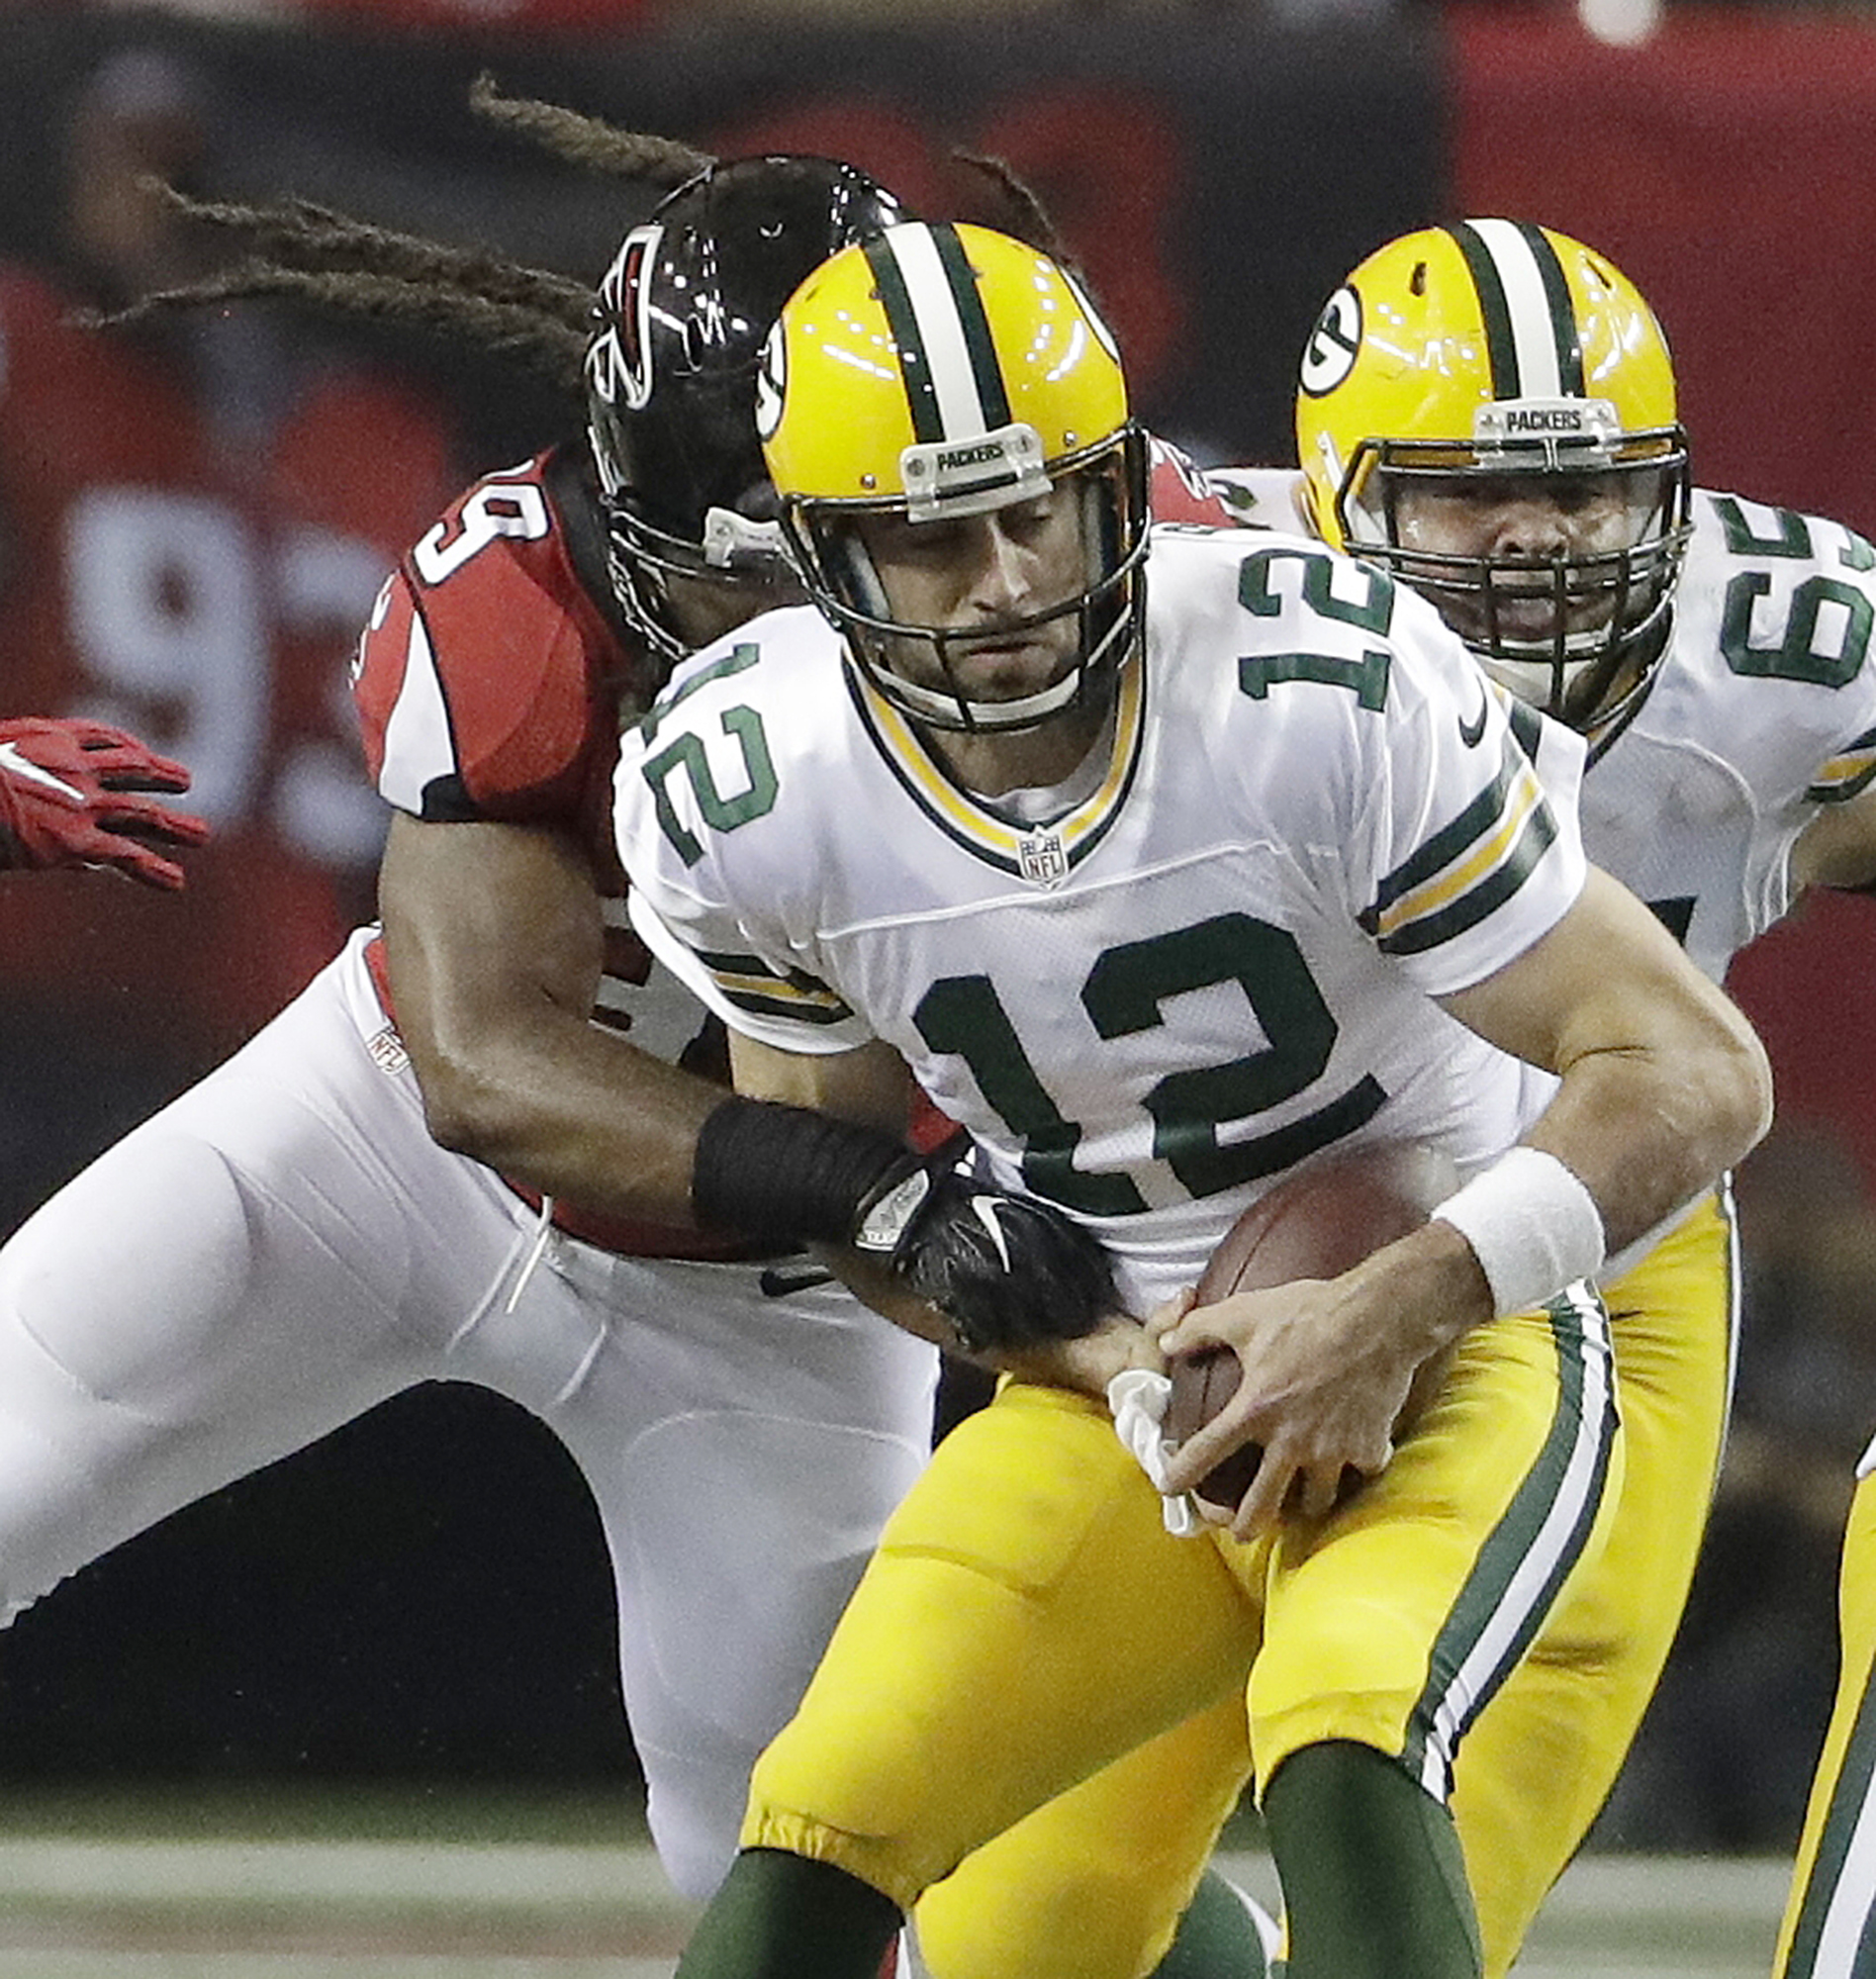 Atlanta Falcons defensive end Adrian Clayborn (99) sacks Green Bay Packers quarterback Aaron Rodgers (12) during the second of an NFL football game, Sunday, Oct. 30, 2016, in Atlanta. (AP Photo/David Goldman)